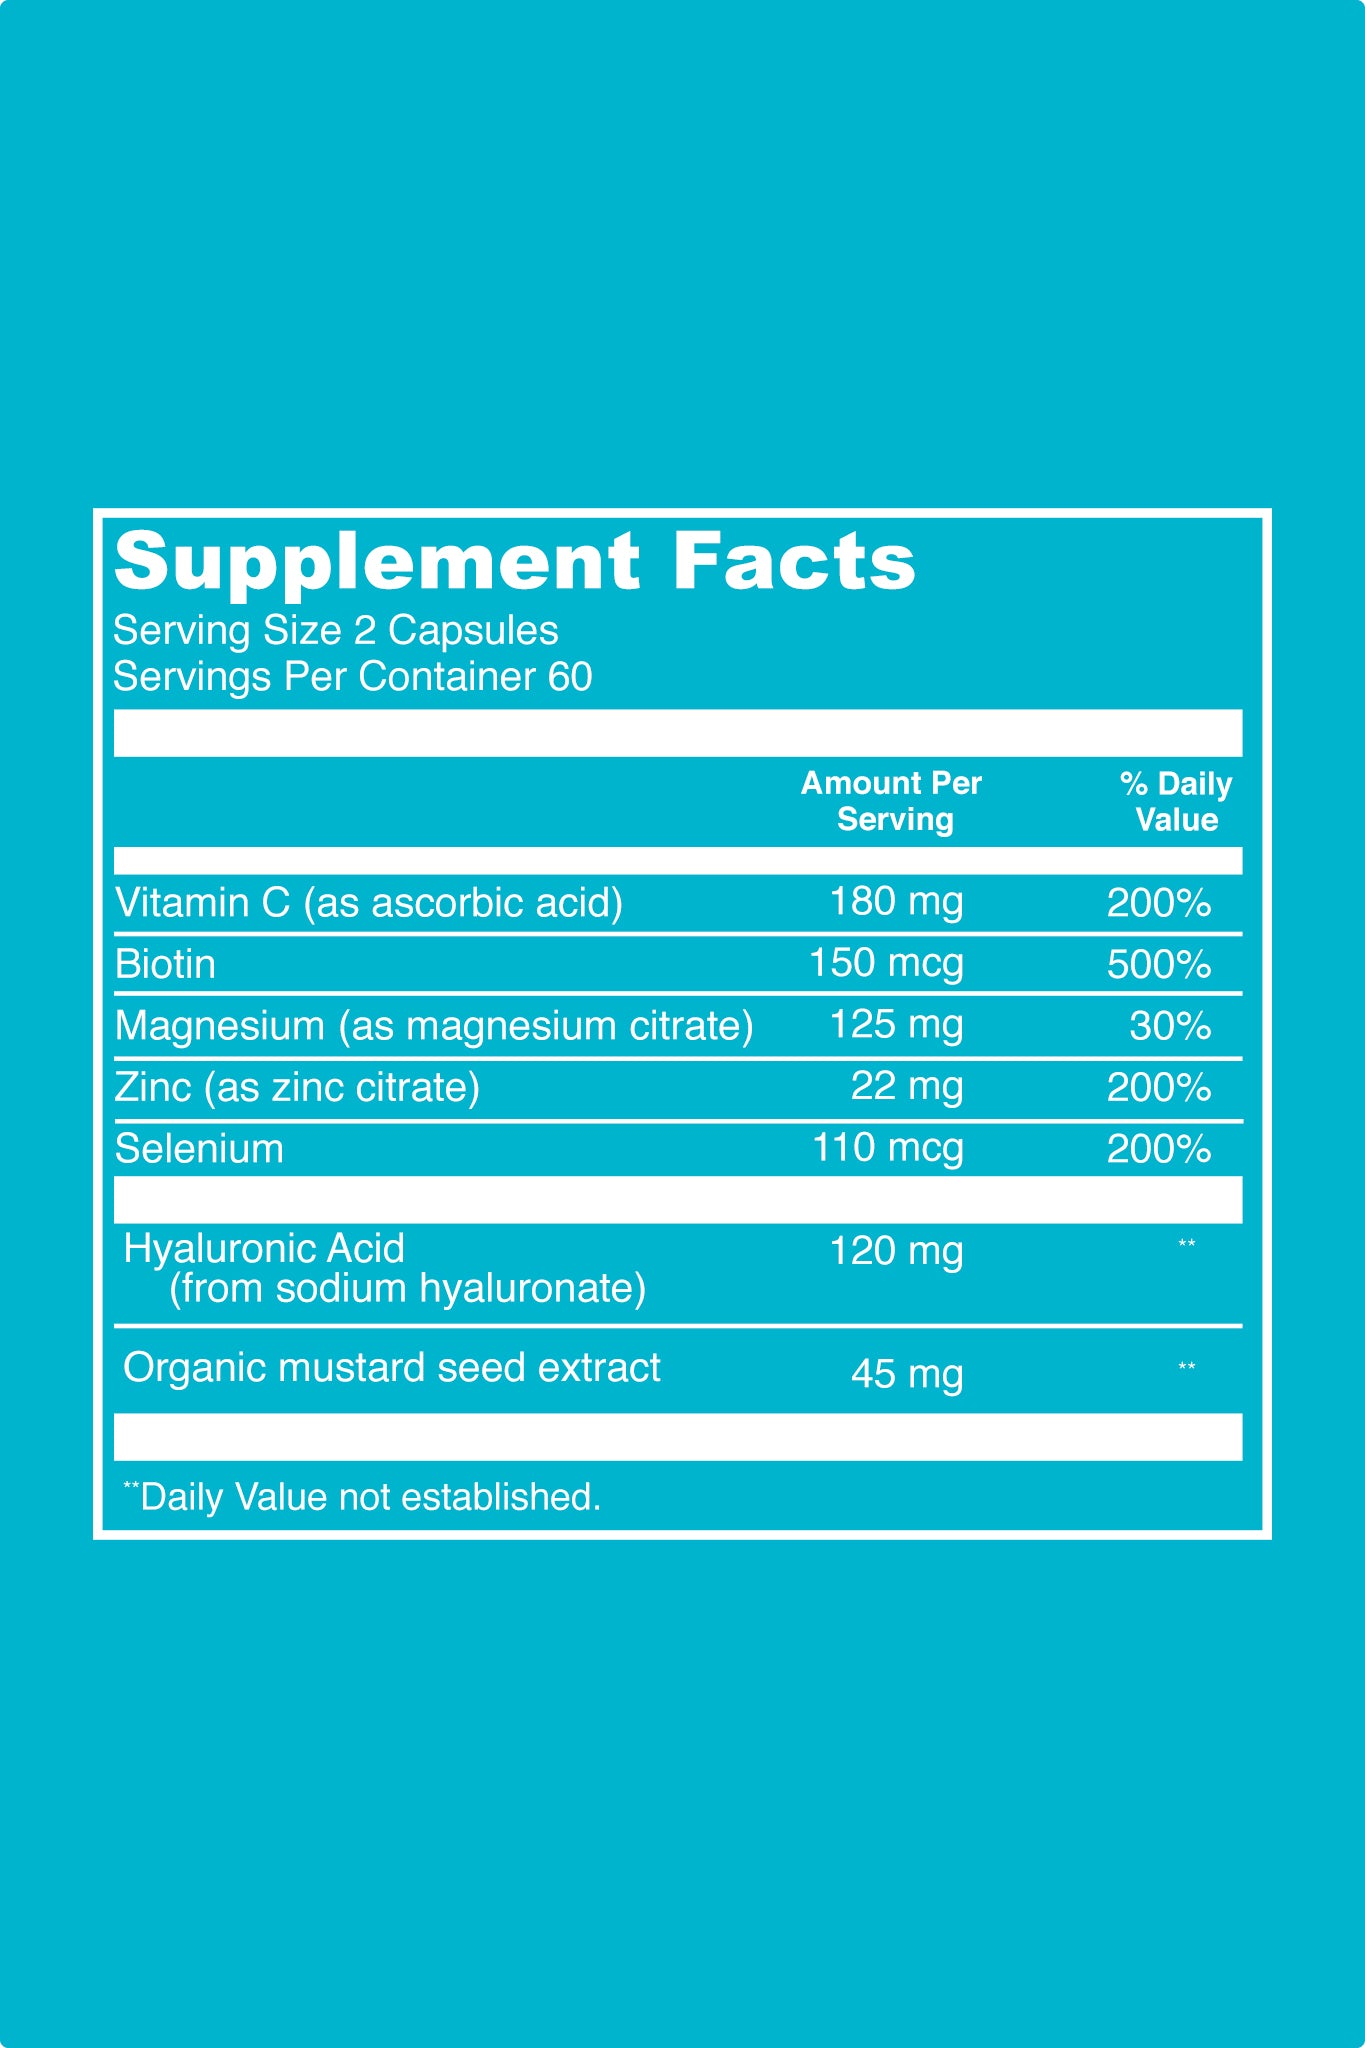 Hyaluronic Acid Super Surge Supplement Facts. Serving Size: 2 Capsules. Servings Per Container: 60. Per Serving Values: Vitamin C (as ascorbic acid): 180 mg (200% DV). Biotin: 150 mcg (500%). Magnesium (as magnesium citrate): 125 mg (30% DV). Zinc (as zinc citrate): 22 mg (200% DV). Selenium: 110 mcg (200% DV). Hyaluronic Acid (from sodium hyaluronate): 120 mg. Organic mustard seed extract: 45 mg.